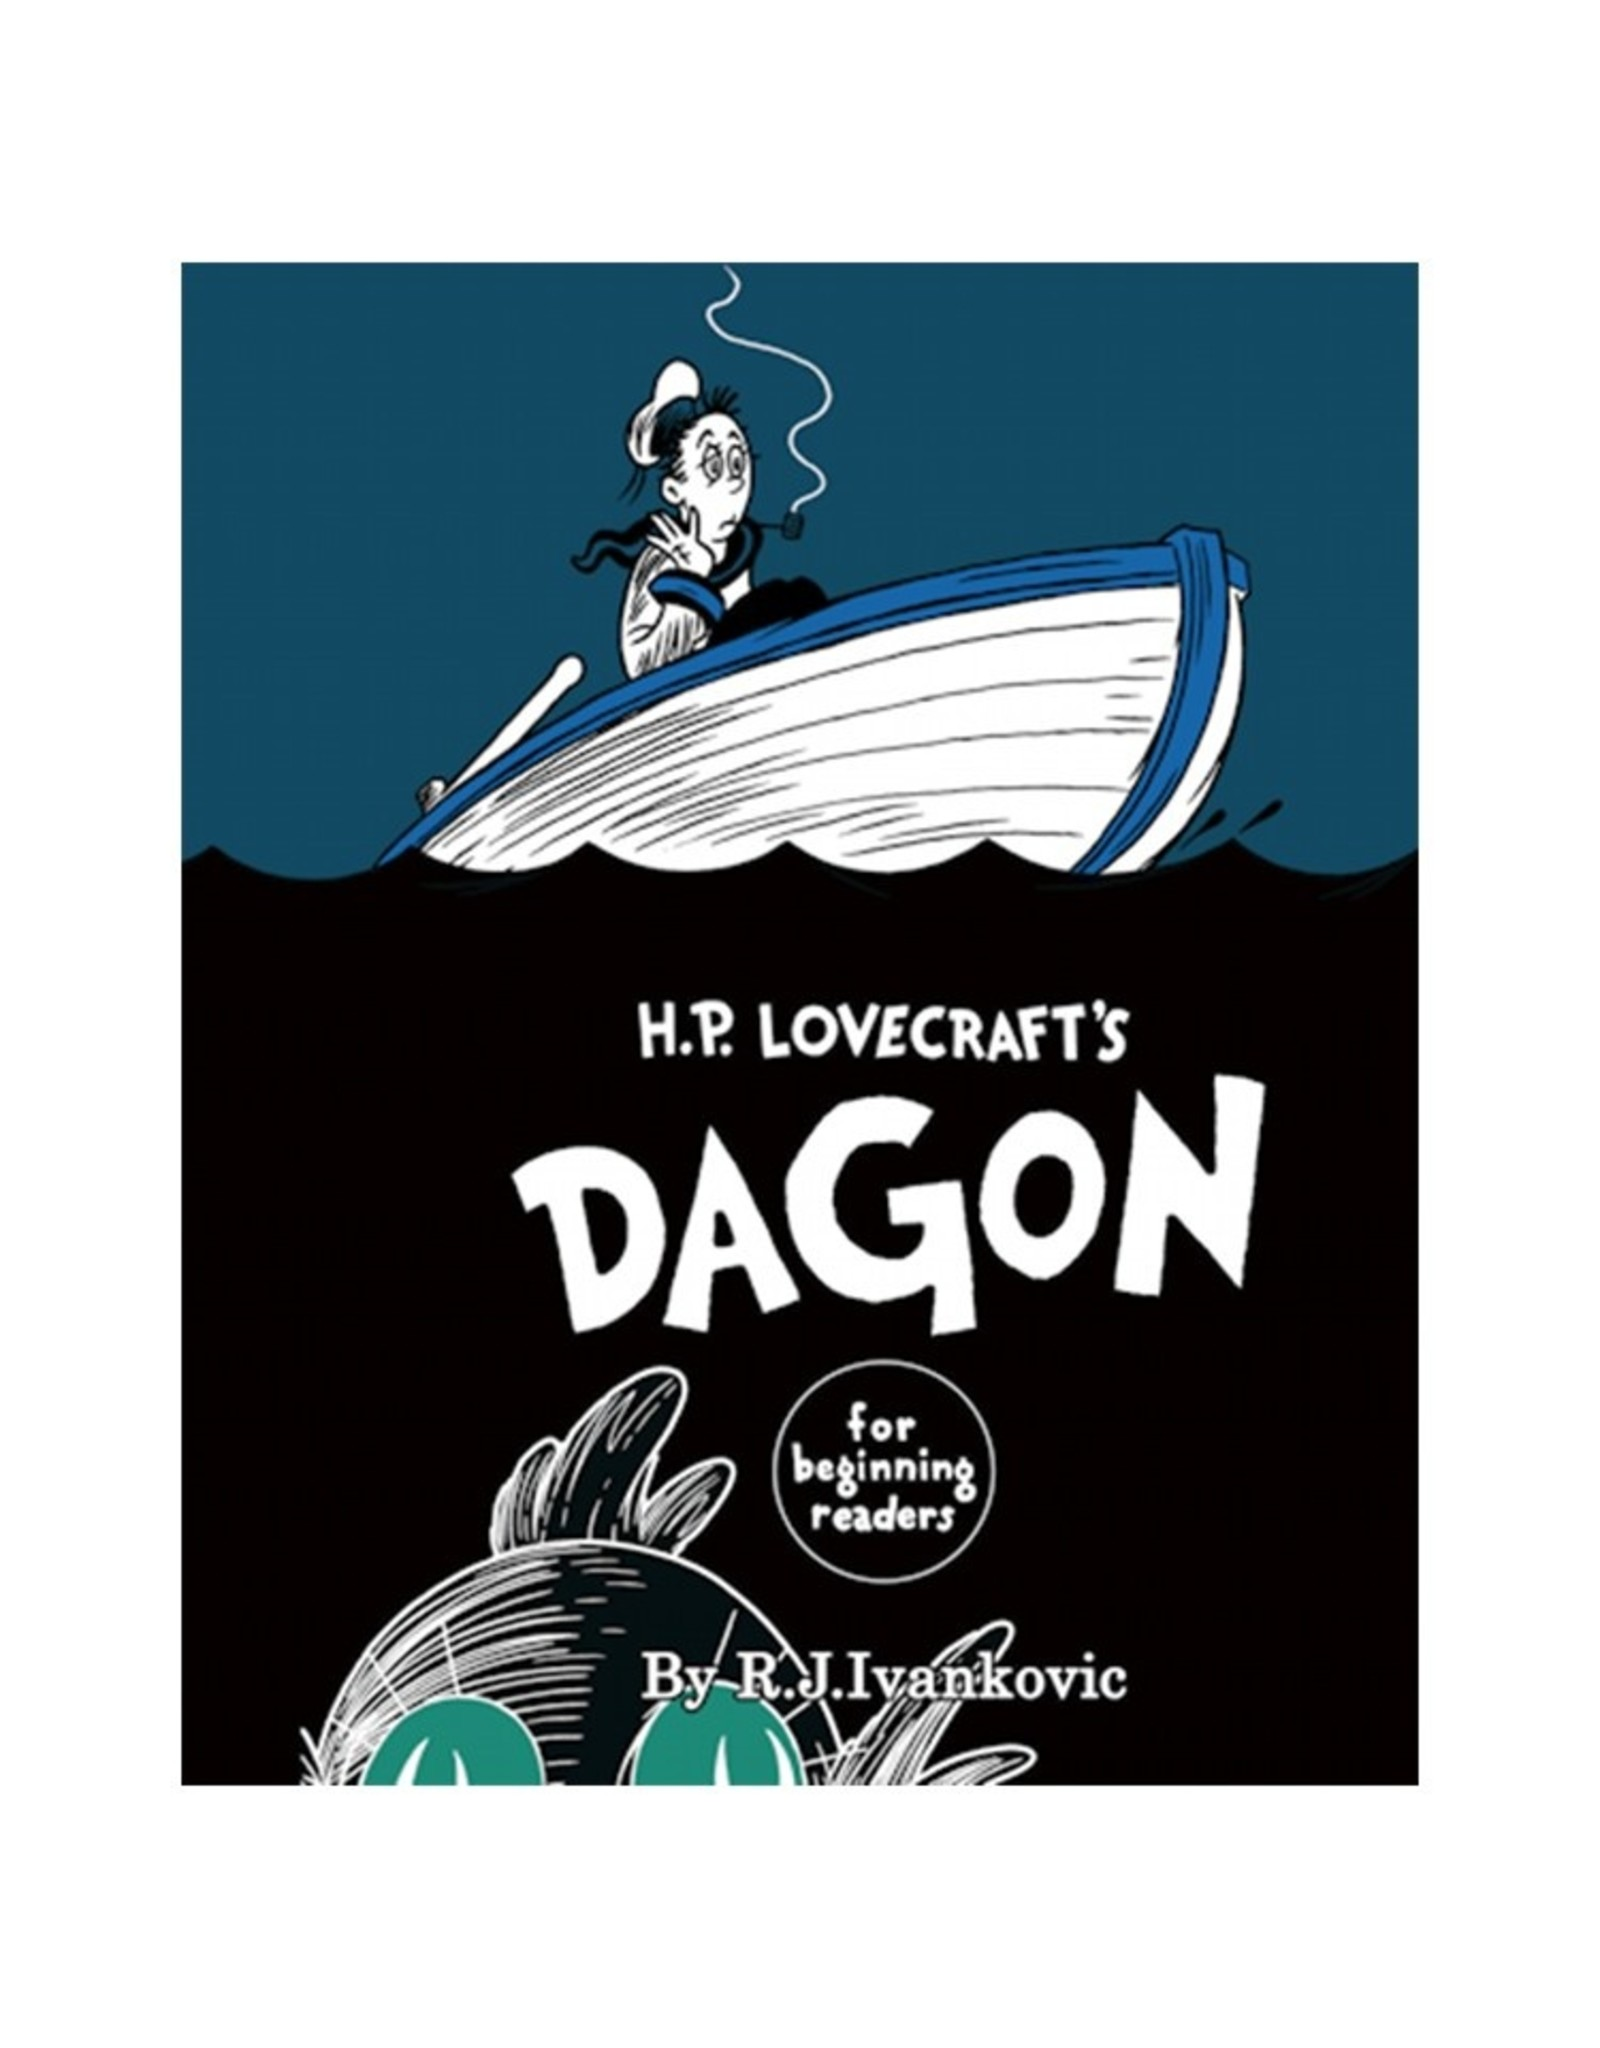 Chaosium Call of Cthulhu: H.P. Lovecraft's Dagon